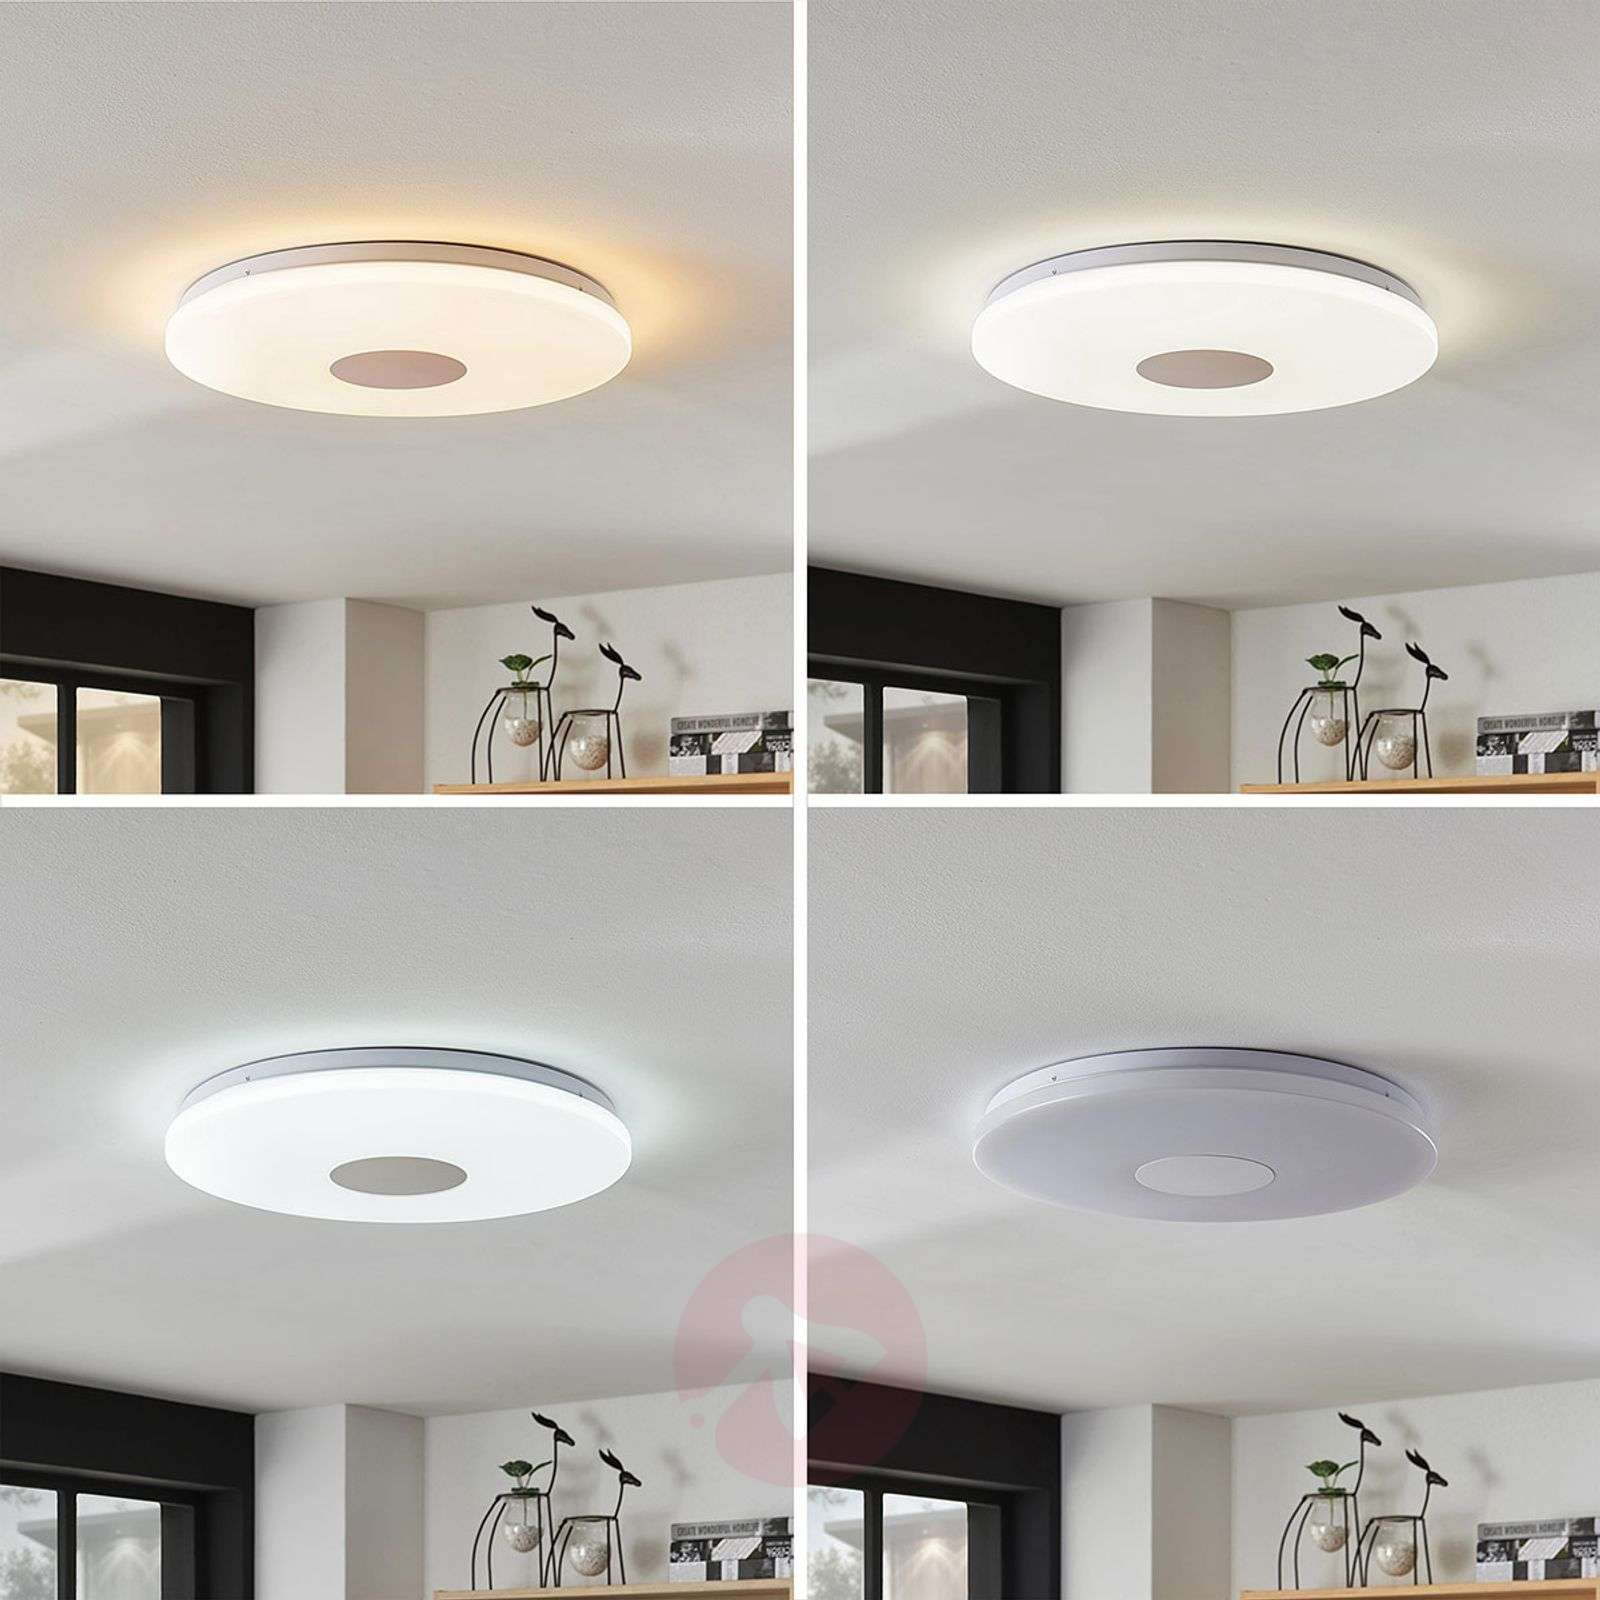 Plafonnier LED fonctionnel Renee, 25 W-9634002-04